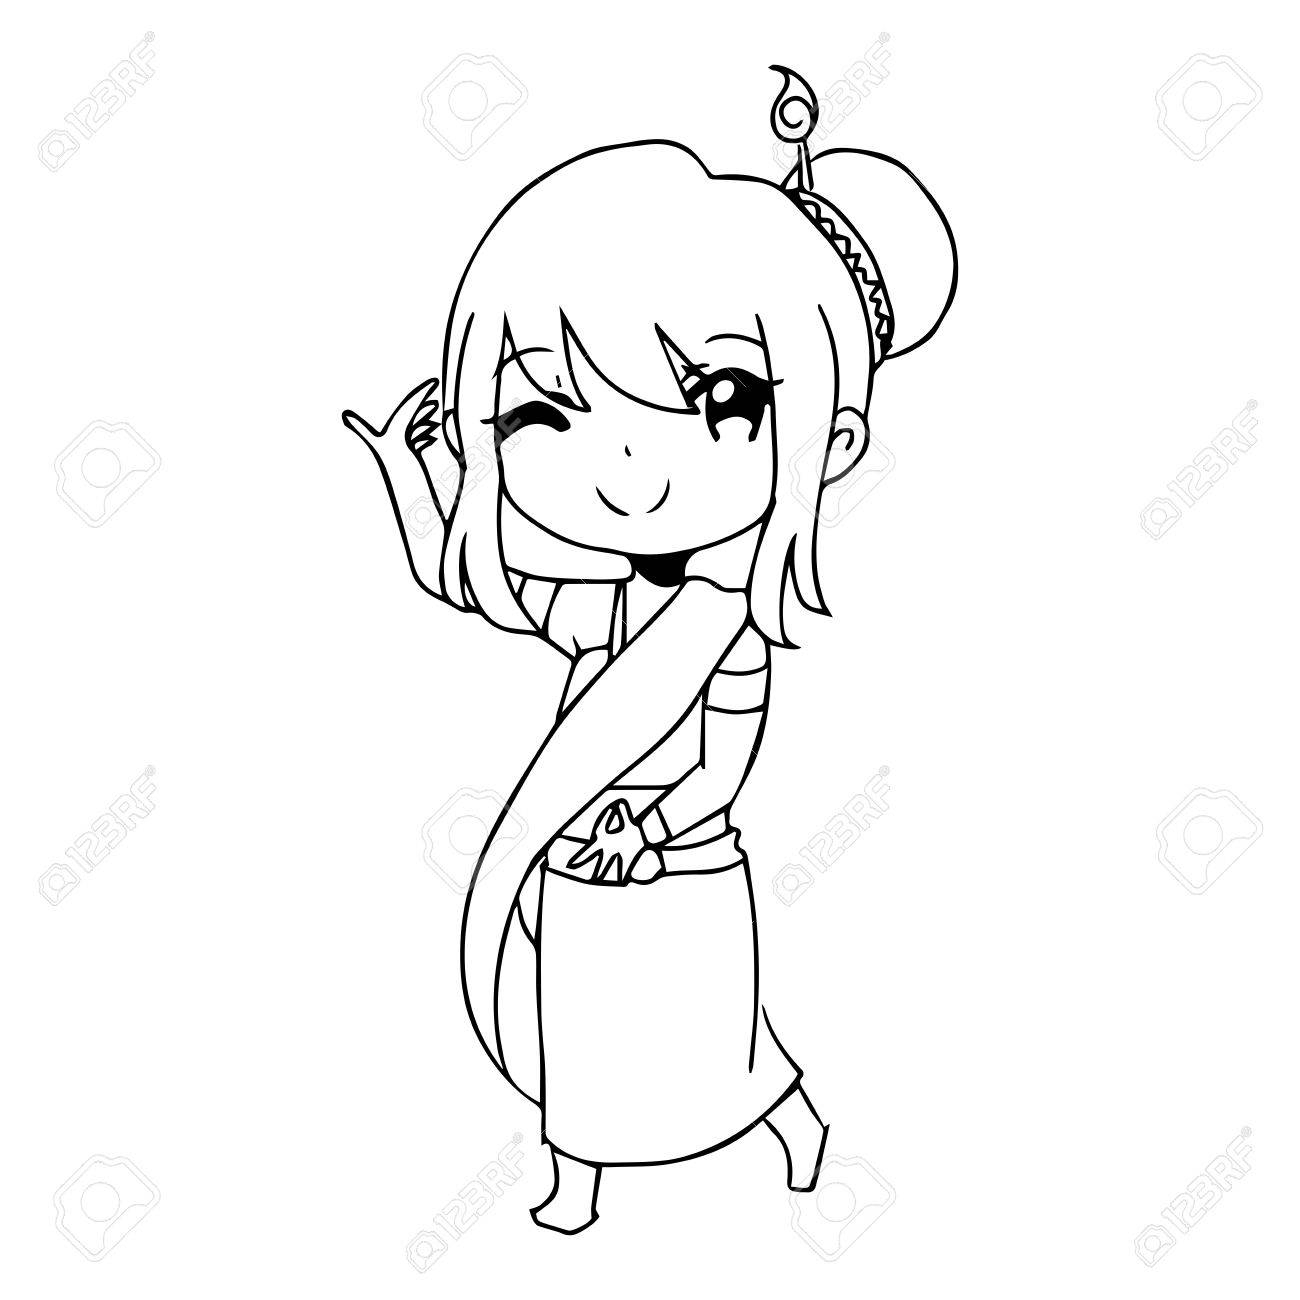 1300x1300 Hand Drawing Pic To Actress Illustration Vector Hand Drawn Doodle